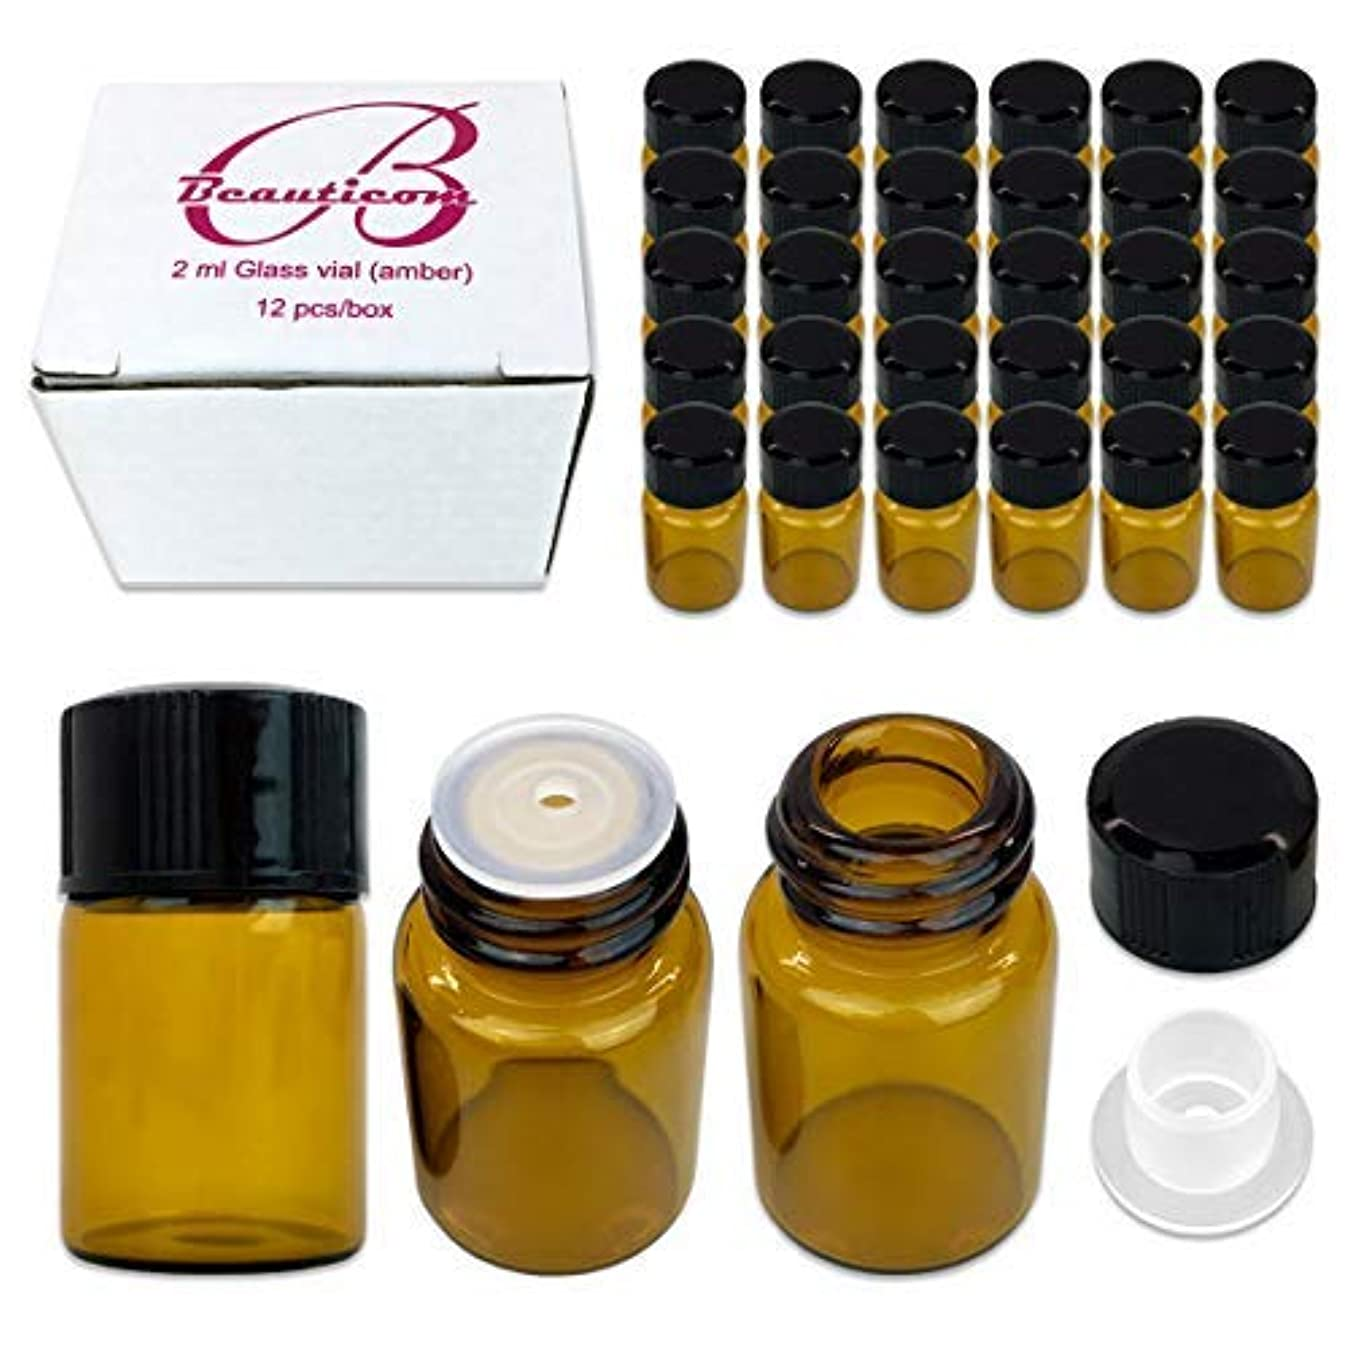 契約したバレエひどく48 Packs Beauticom 2ML Amber Glass Vial for Essential Oils, Aromatherapy, Fragrance, Serums, Spritzes, with Orifice...